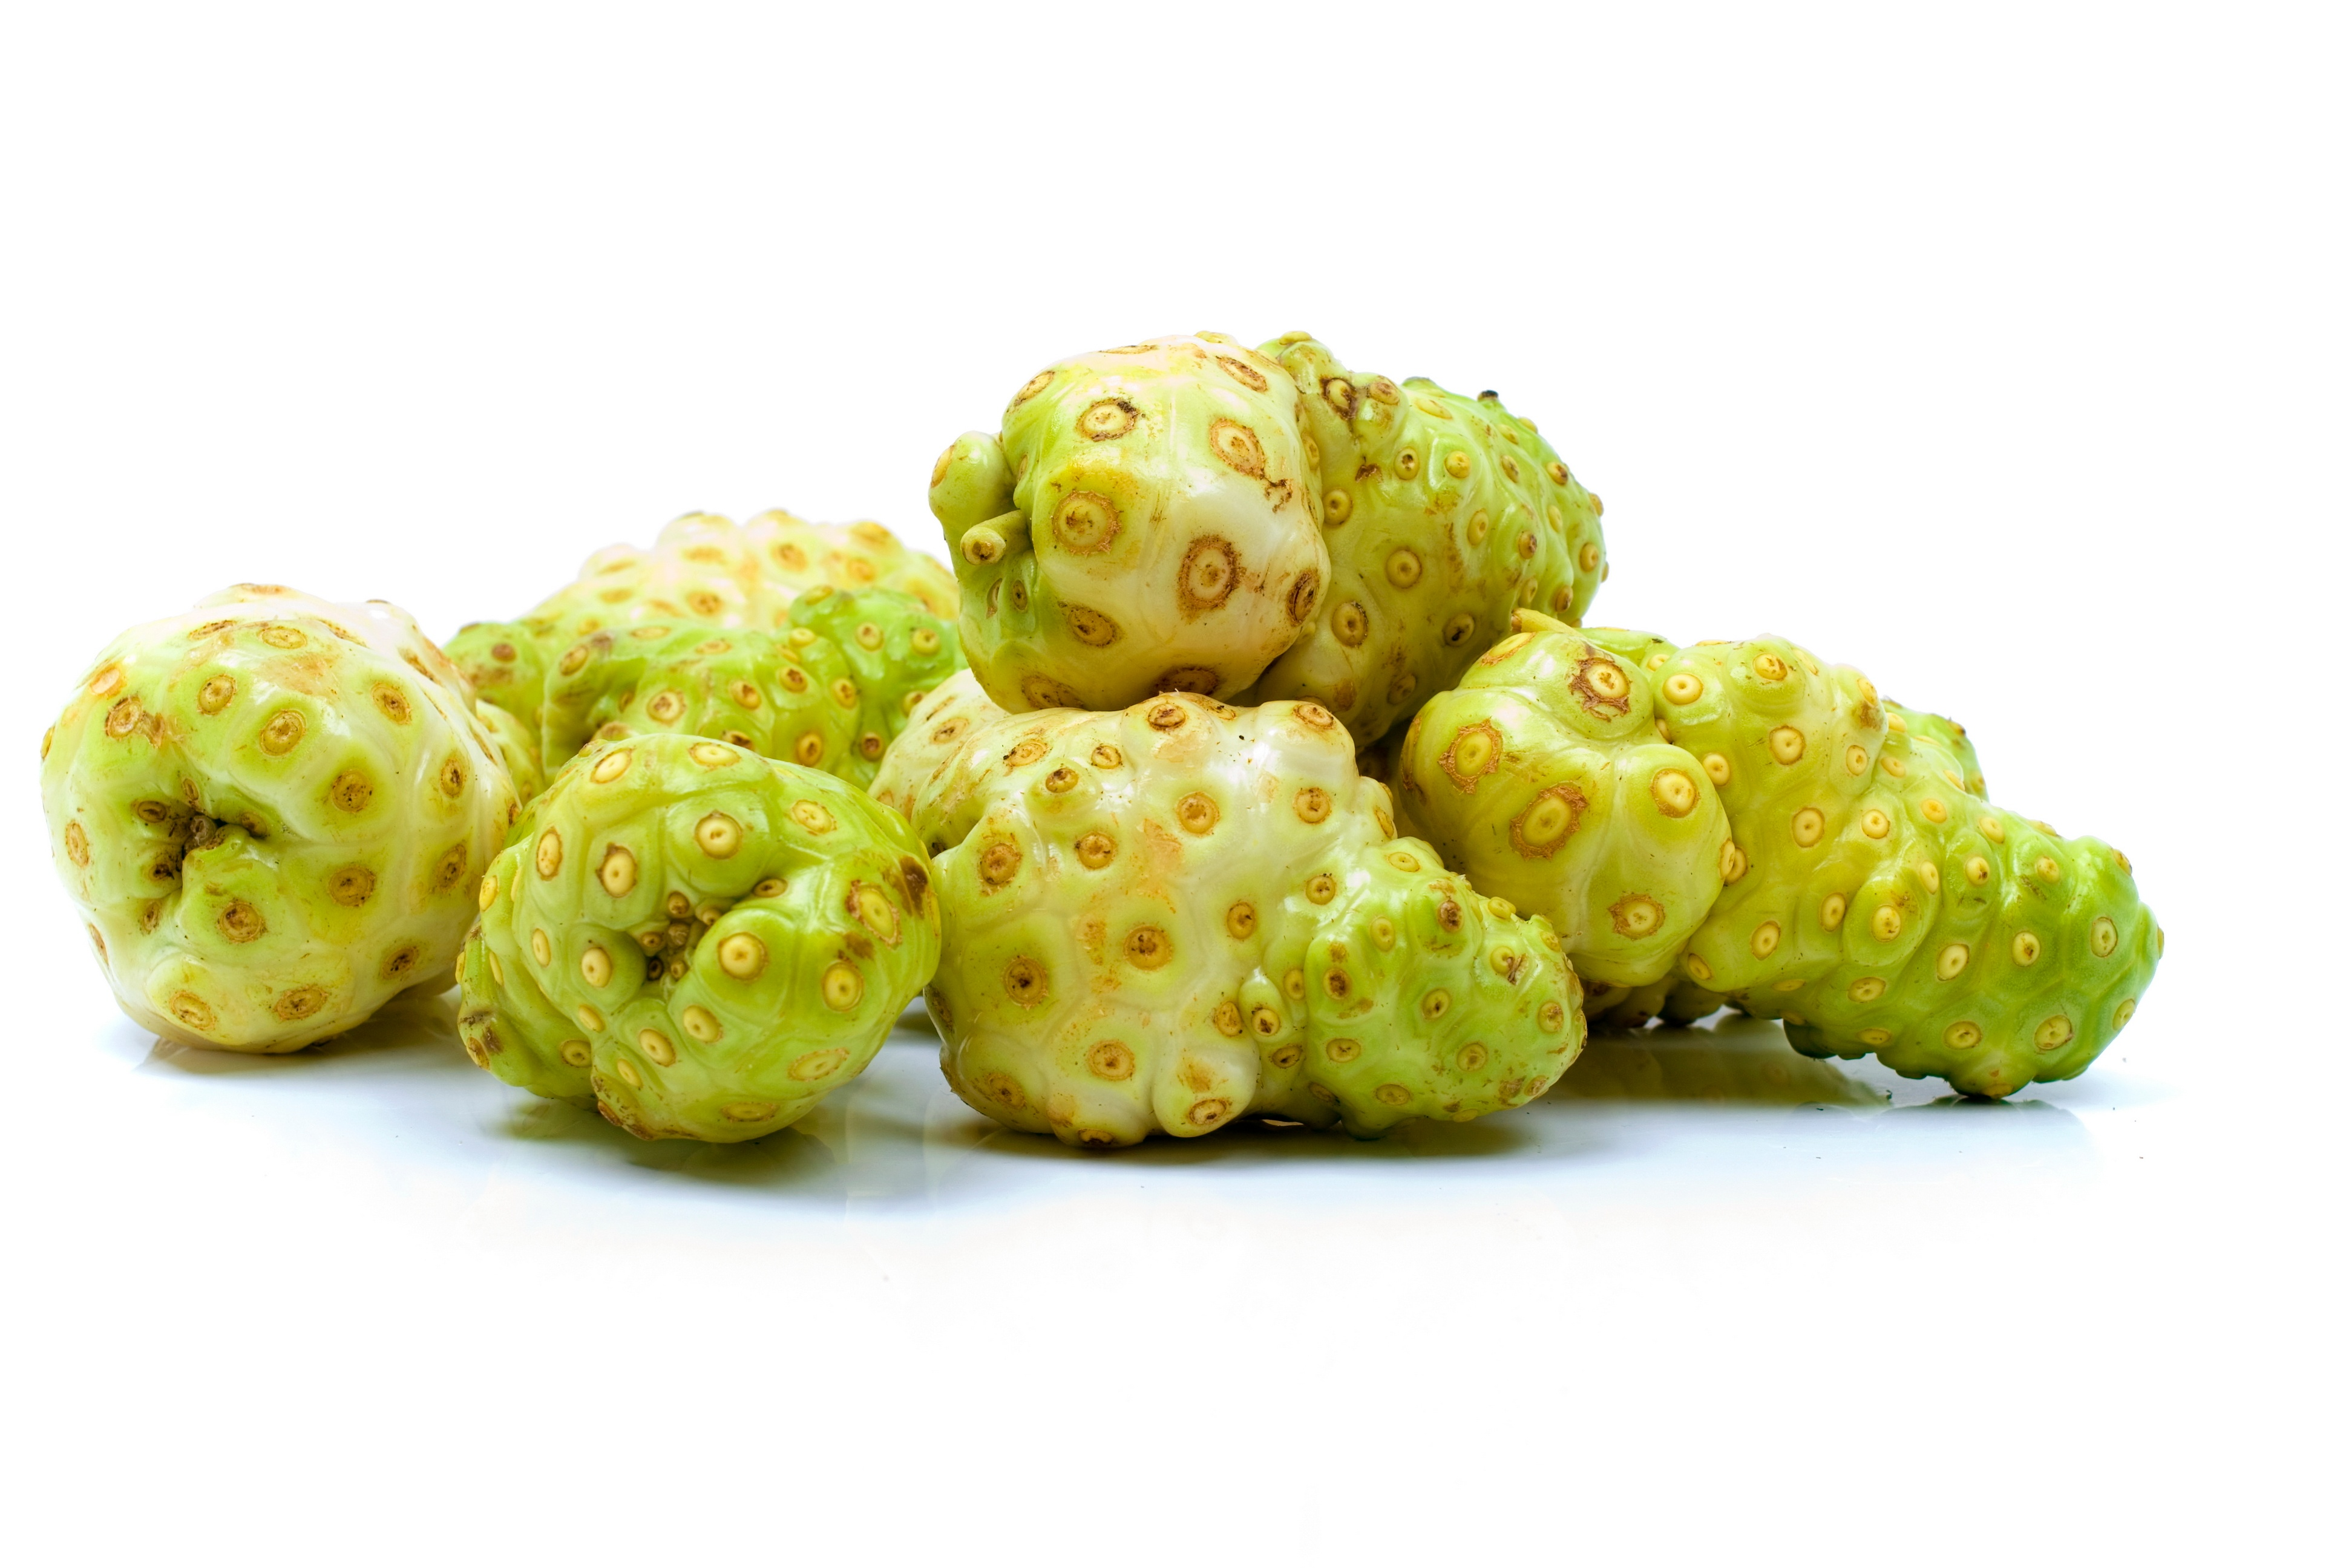 Noni - antioxidant rich tropical fruit